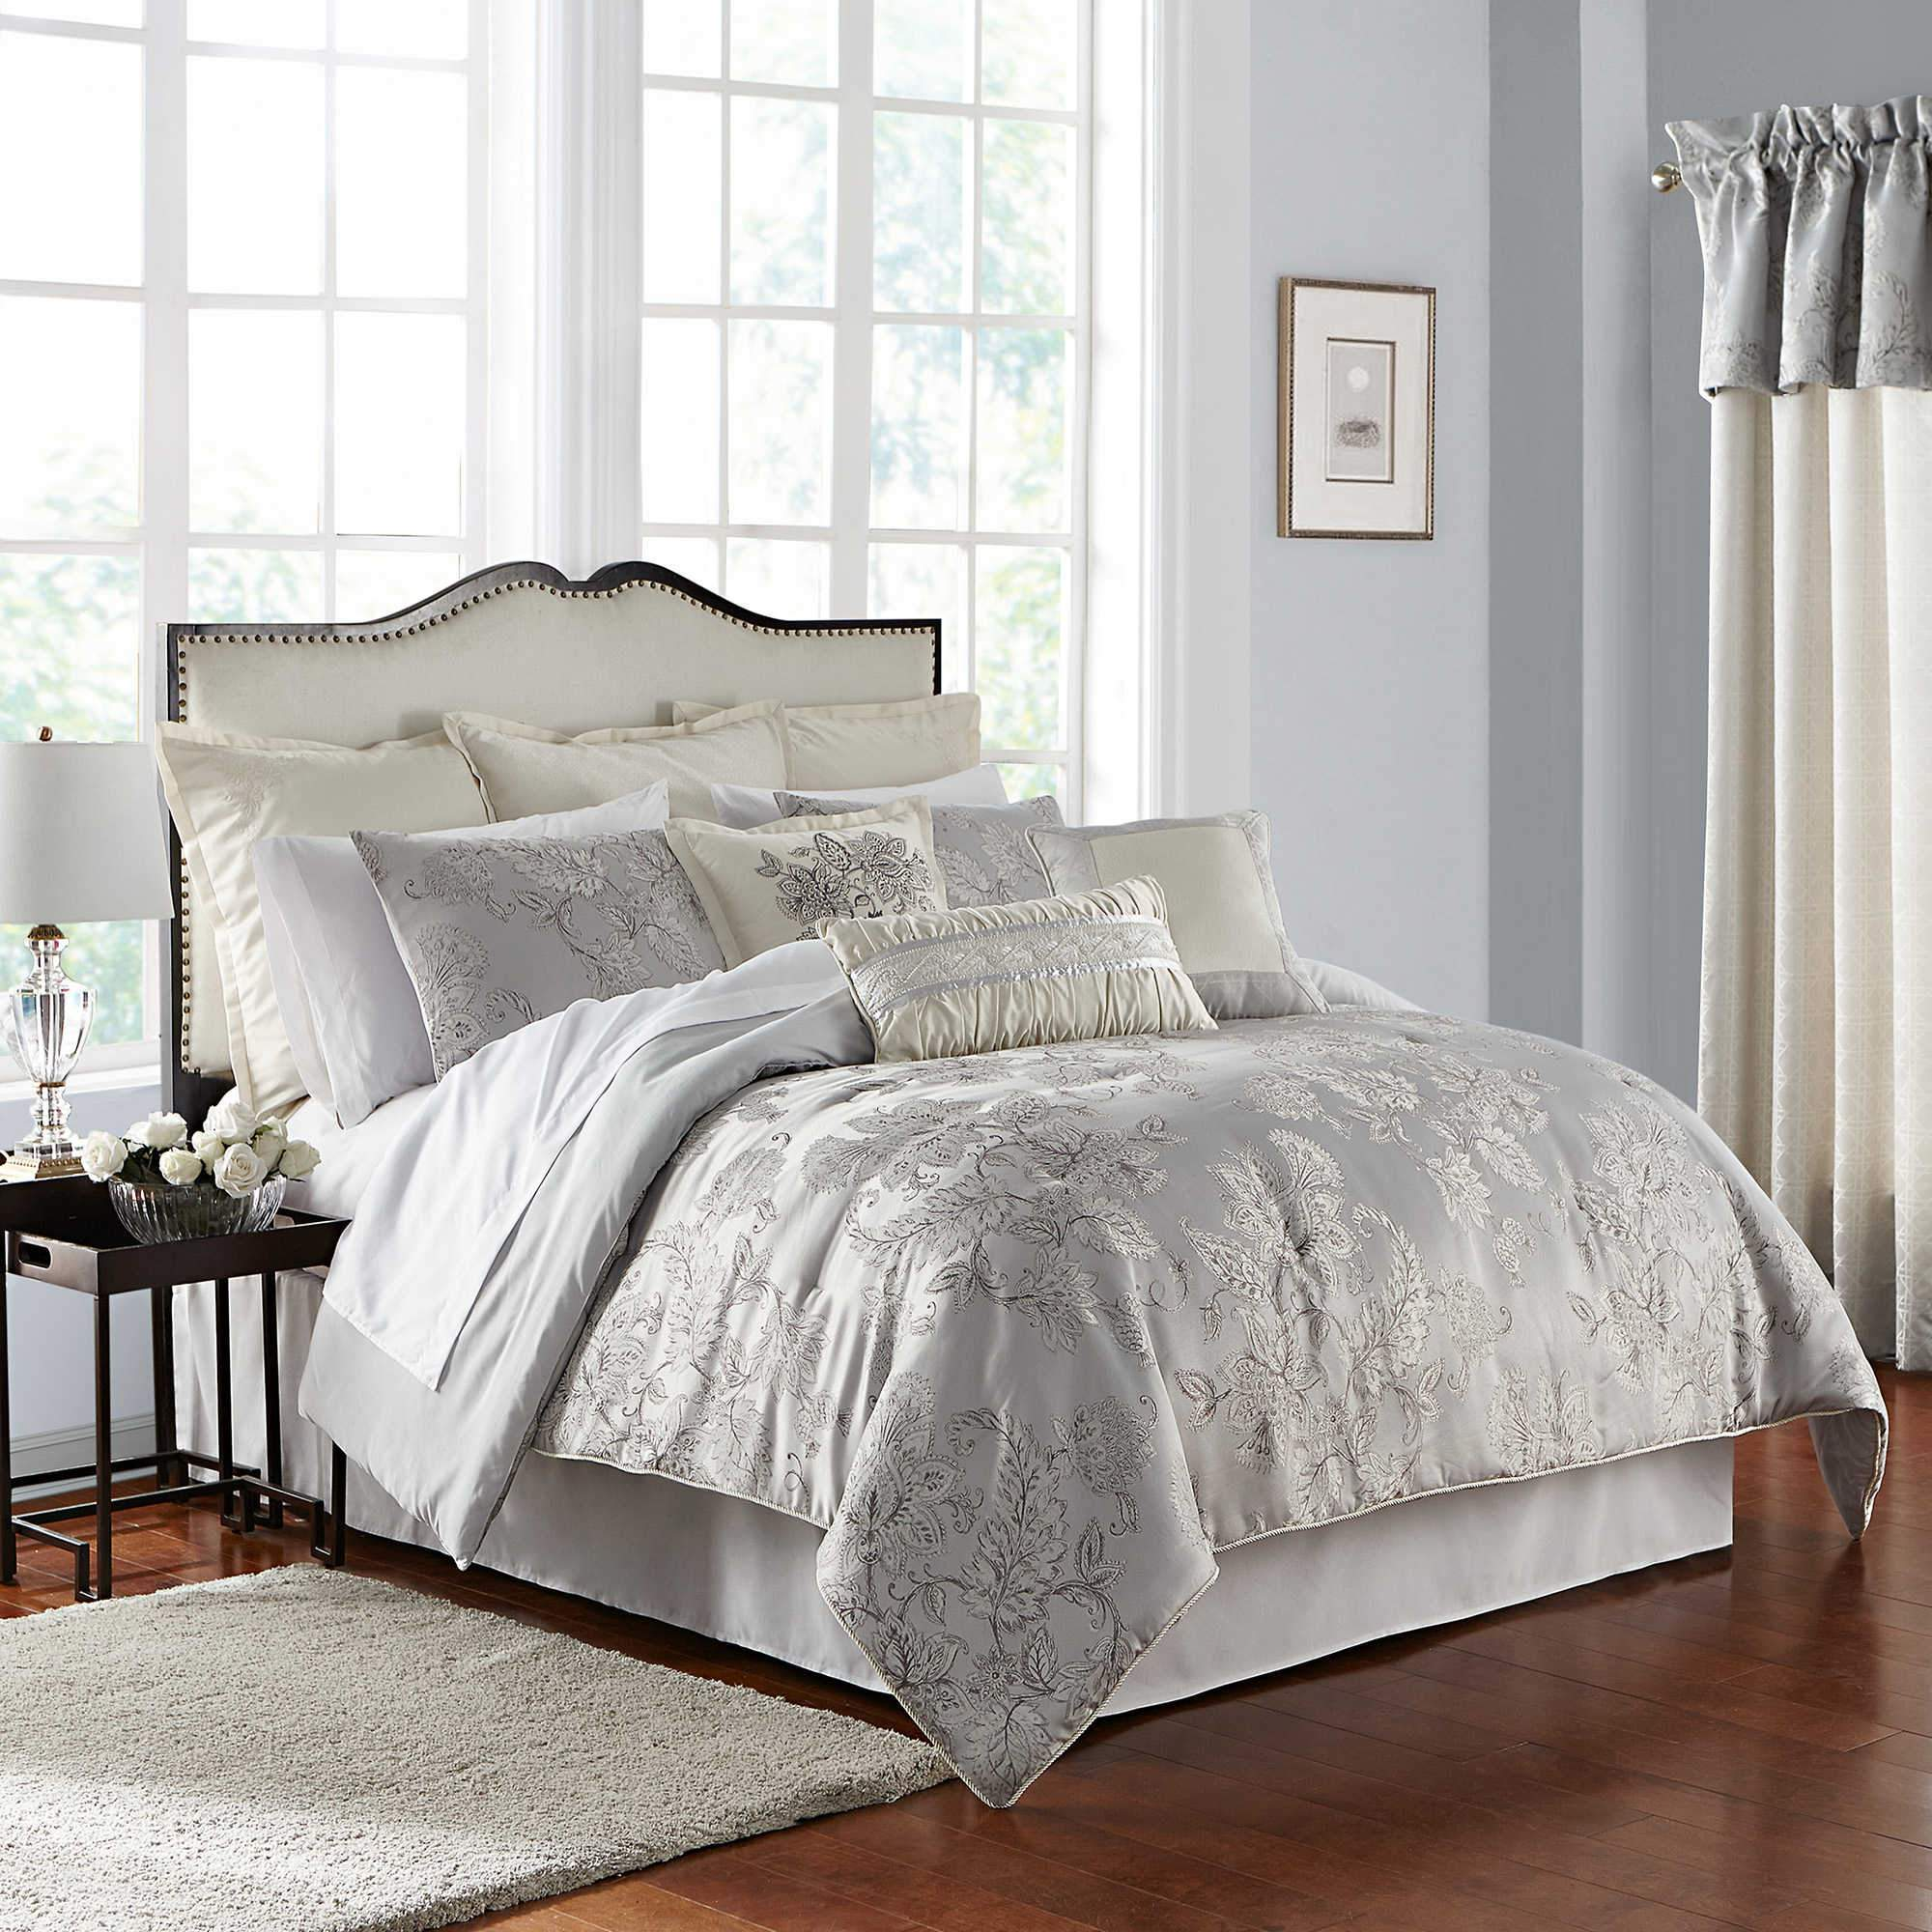 Lacy Silver 4-Piece Comforter Set [Luxury comforter Sets] [by Latest Bedding]